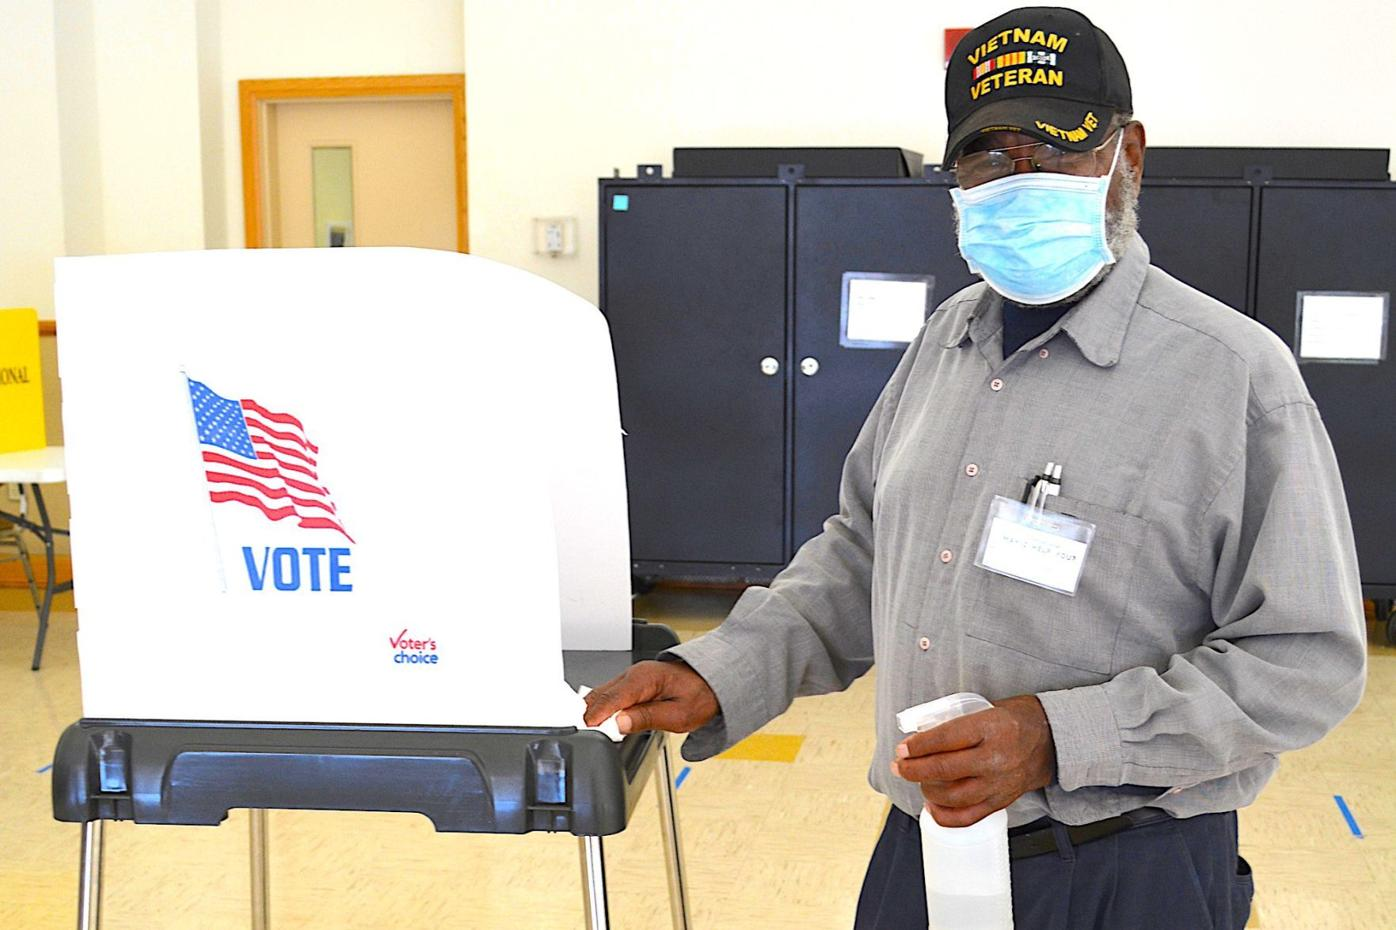 Election Day voting goes smoothly in Kent County